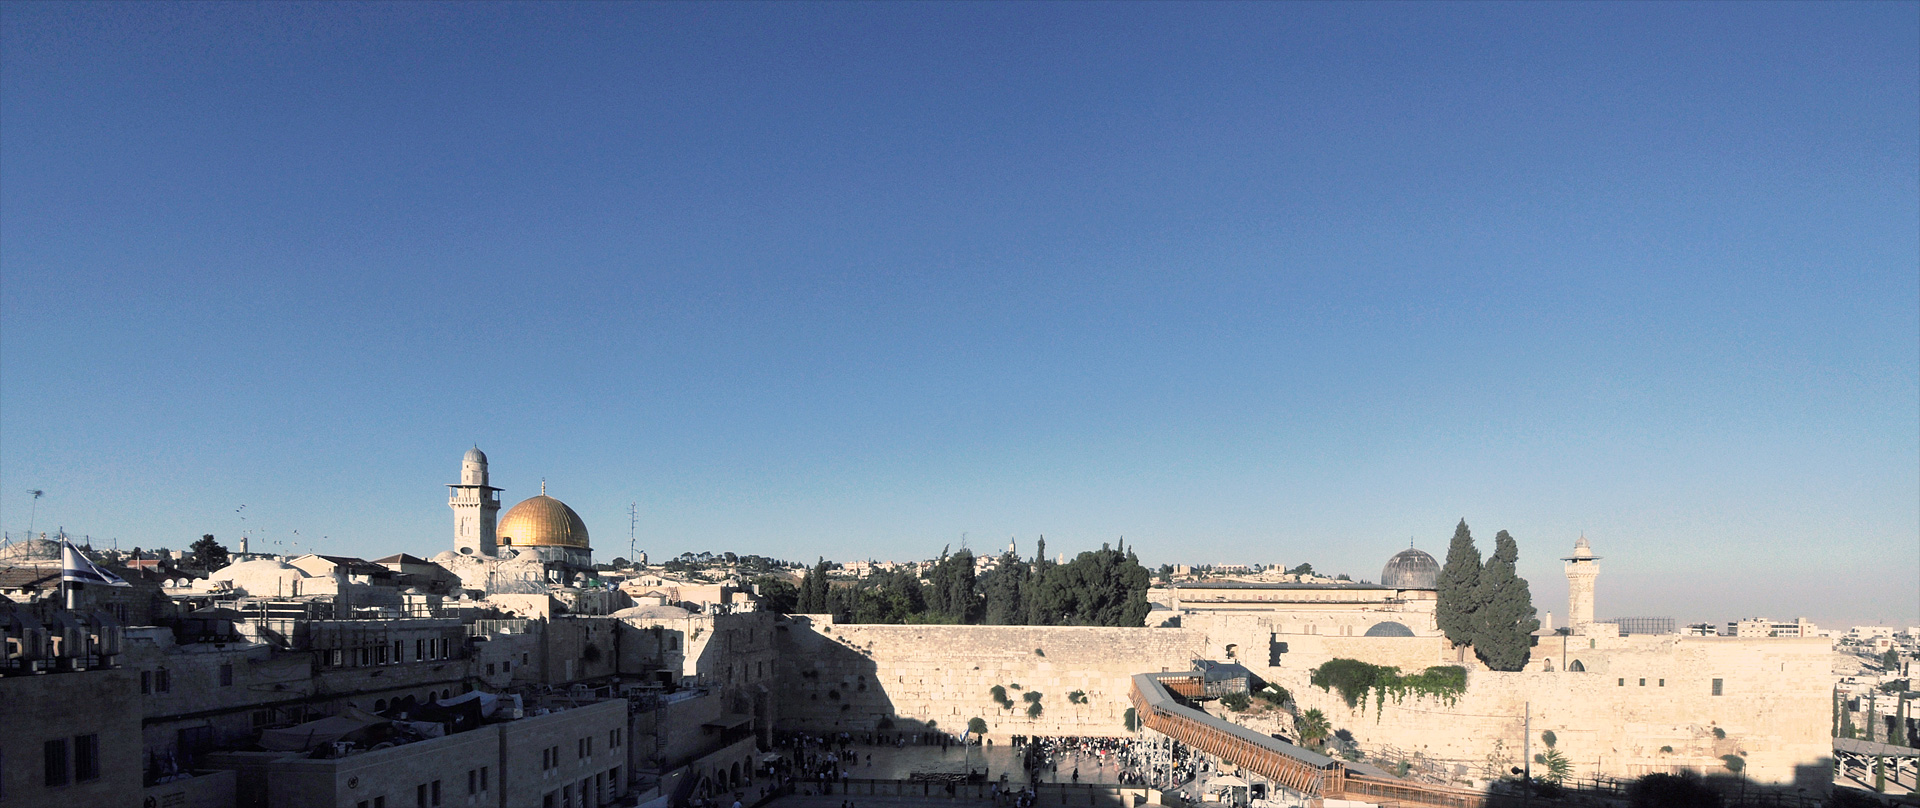 Western Wall, Dome of the Rock and Temple Mount, Jerusalem